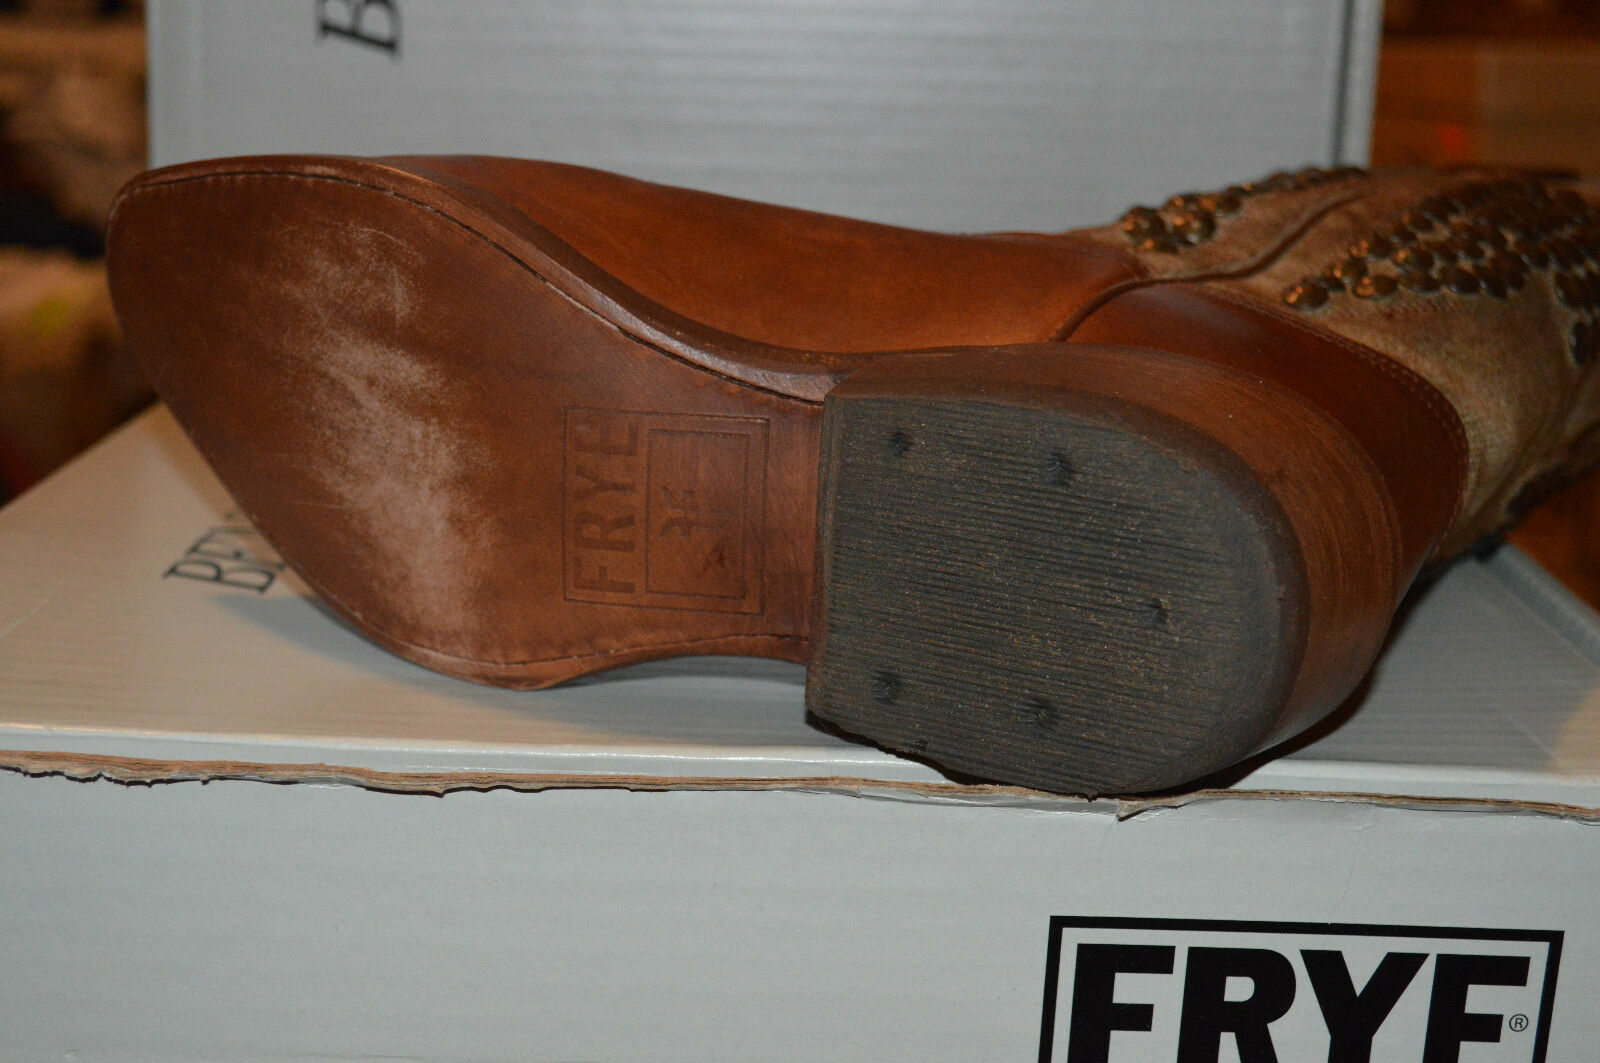 NEW FRYE BILLY BOOTS shoes Pull-on Cowboy    348 Hammered Stud Cognac 77689 Brown 4cc21f